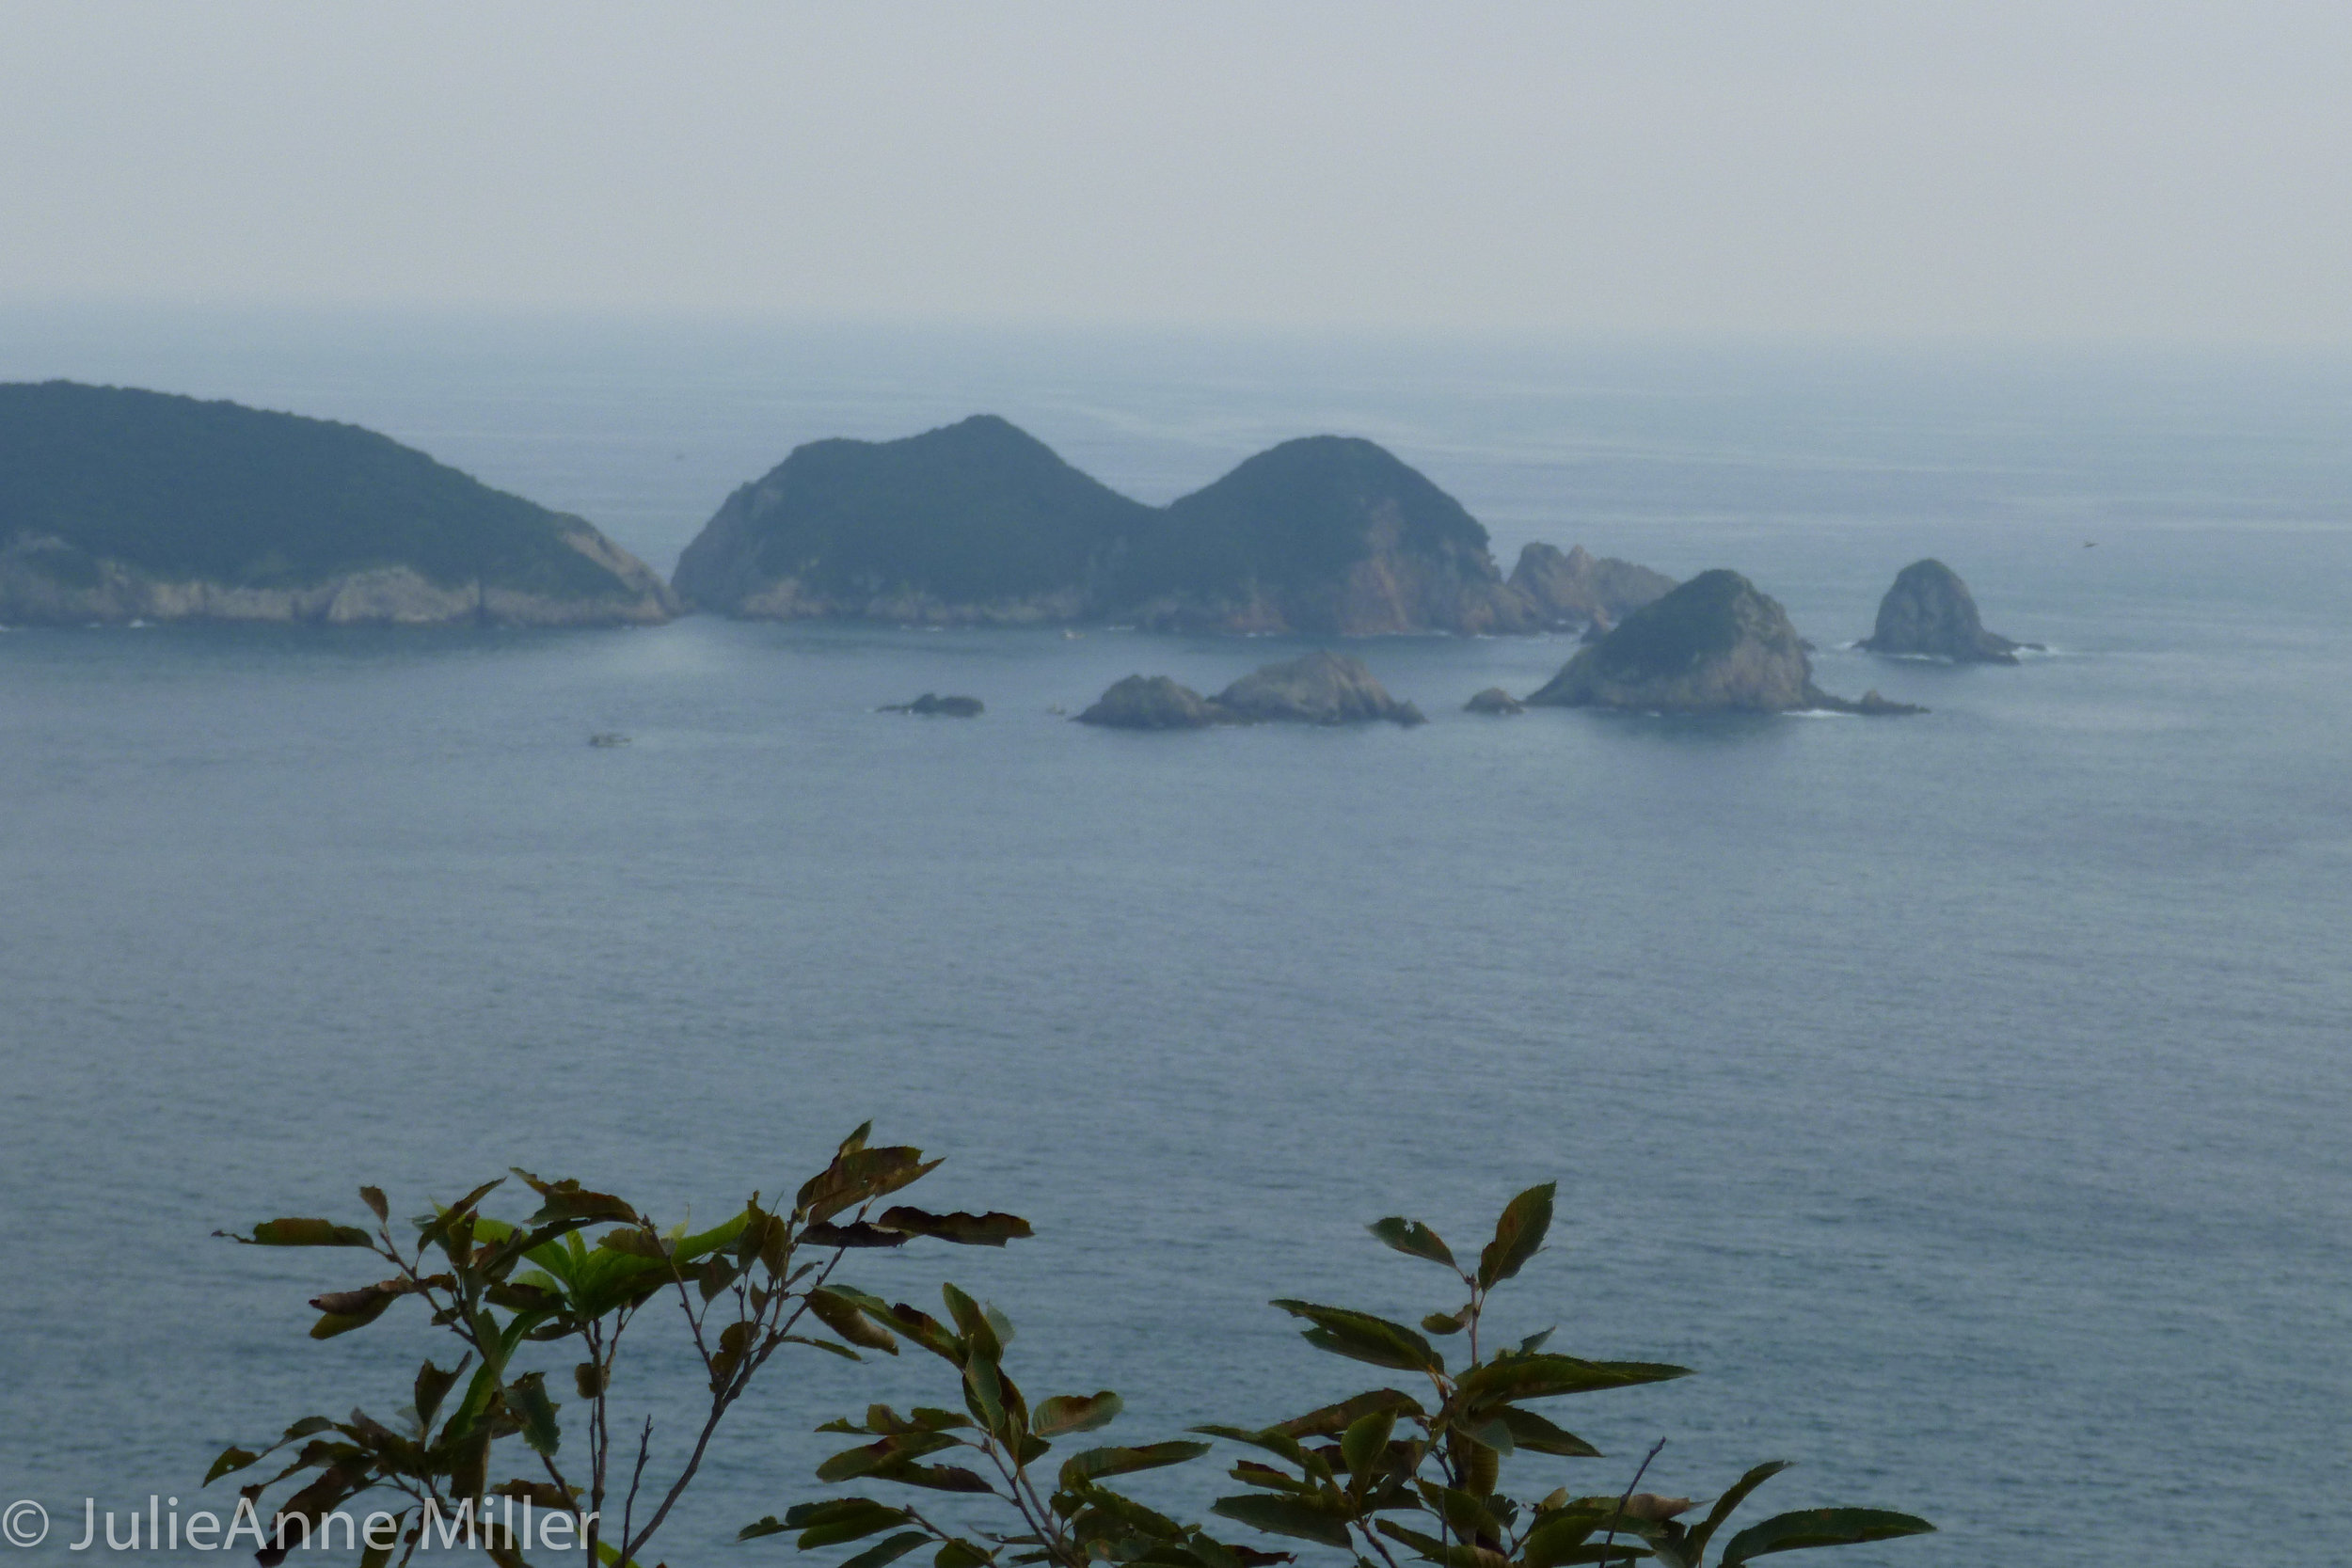 Southern coast of Korea